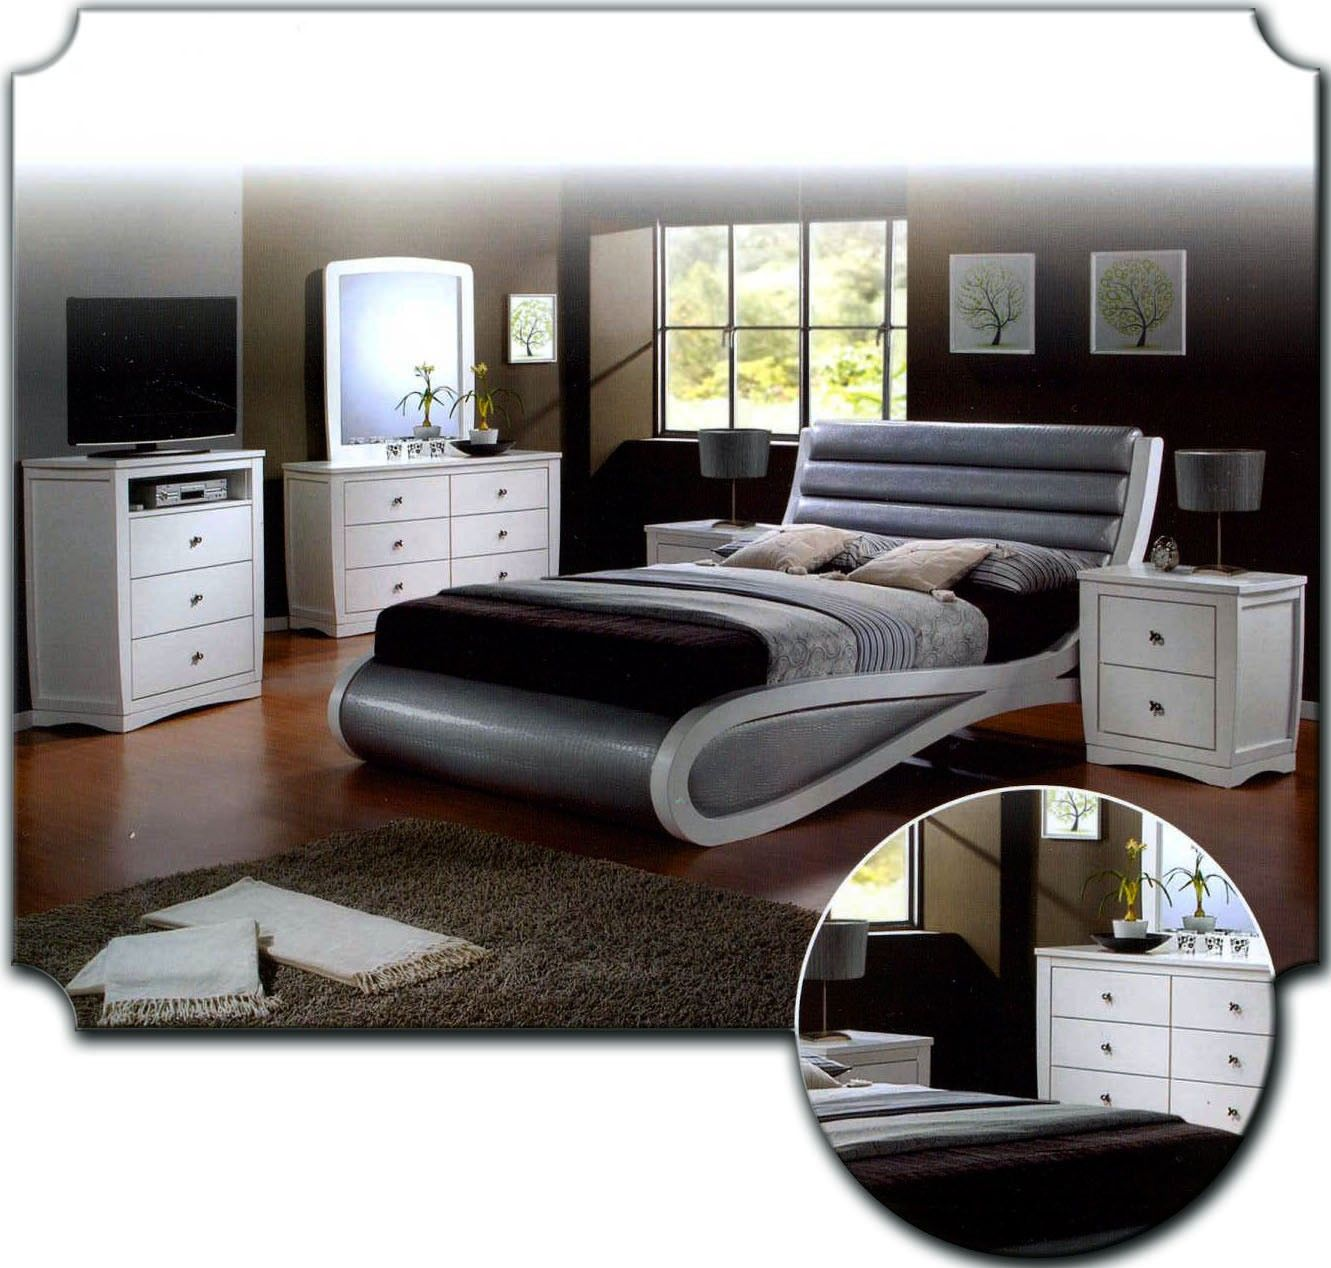 Teenage boys bedroom furniture - Bedroom Ideas For Teenage Guys Teen Platform Bedroom